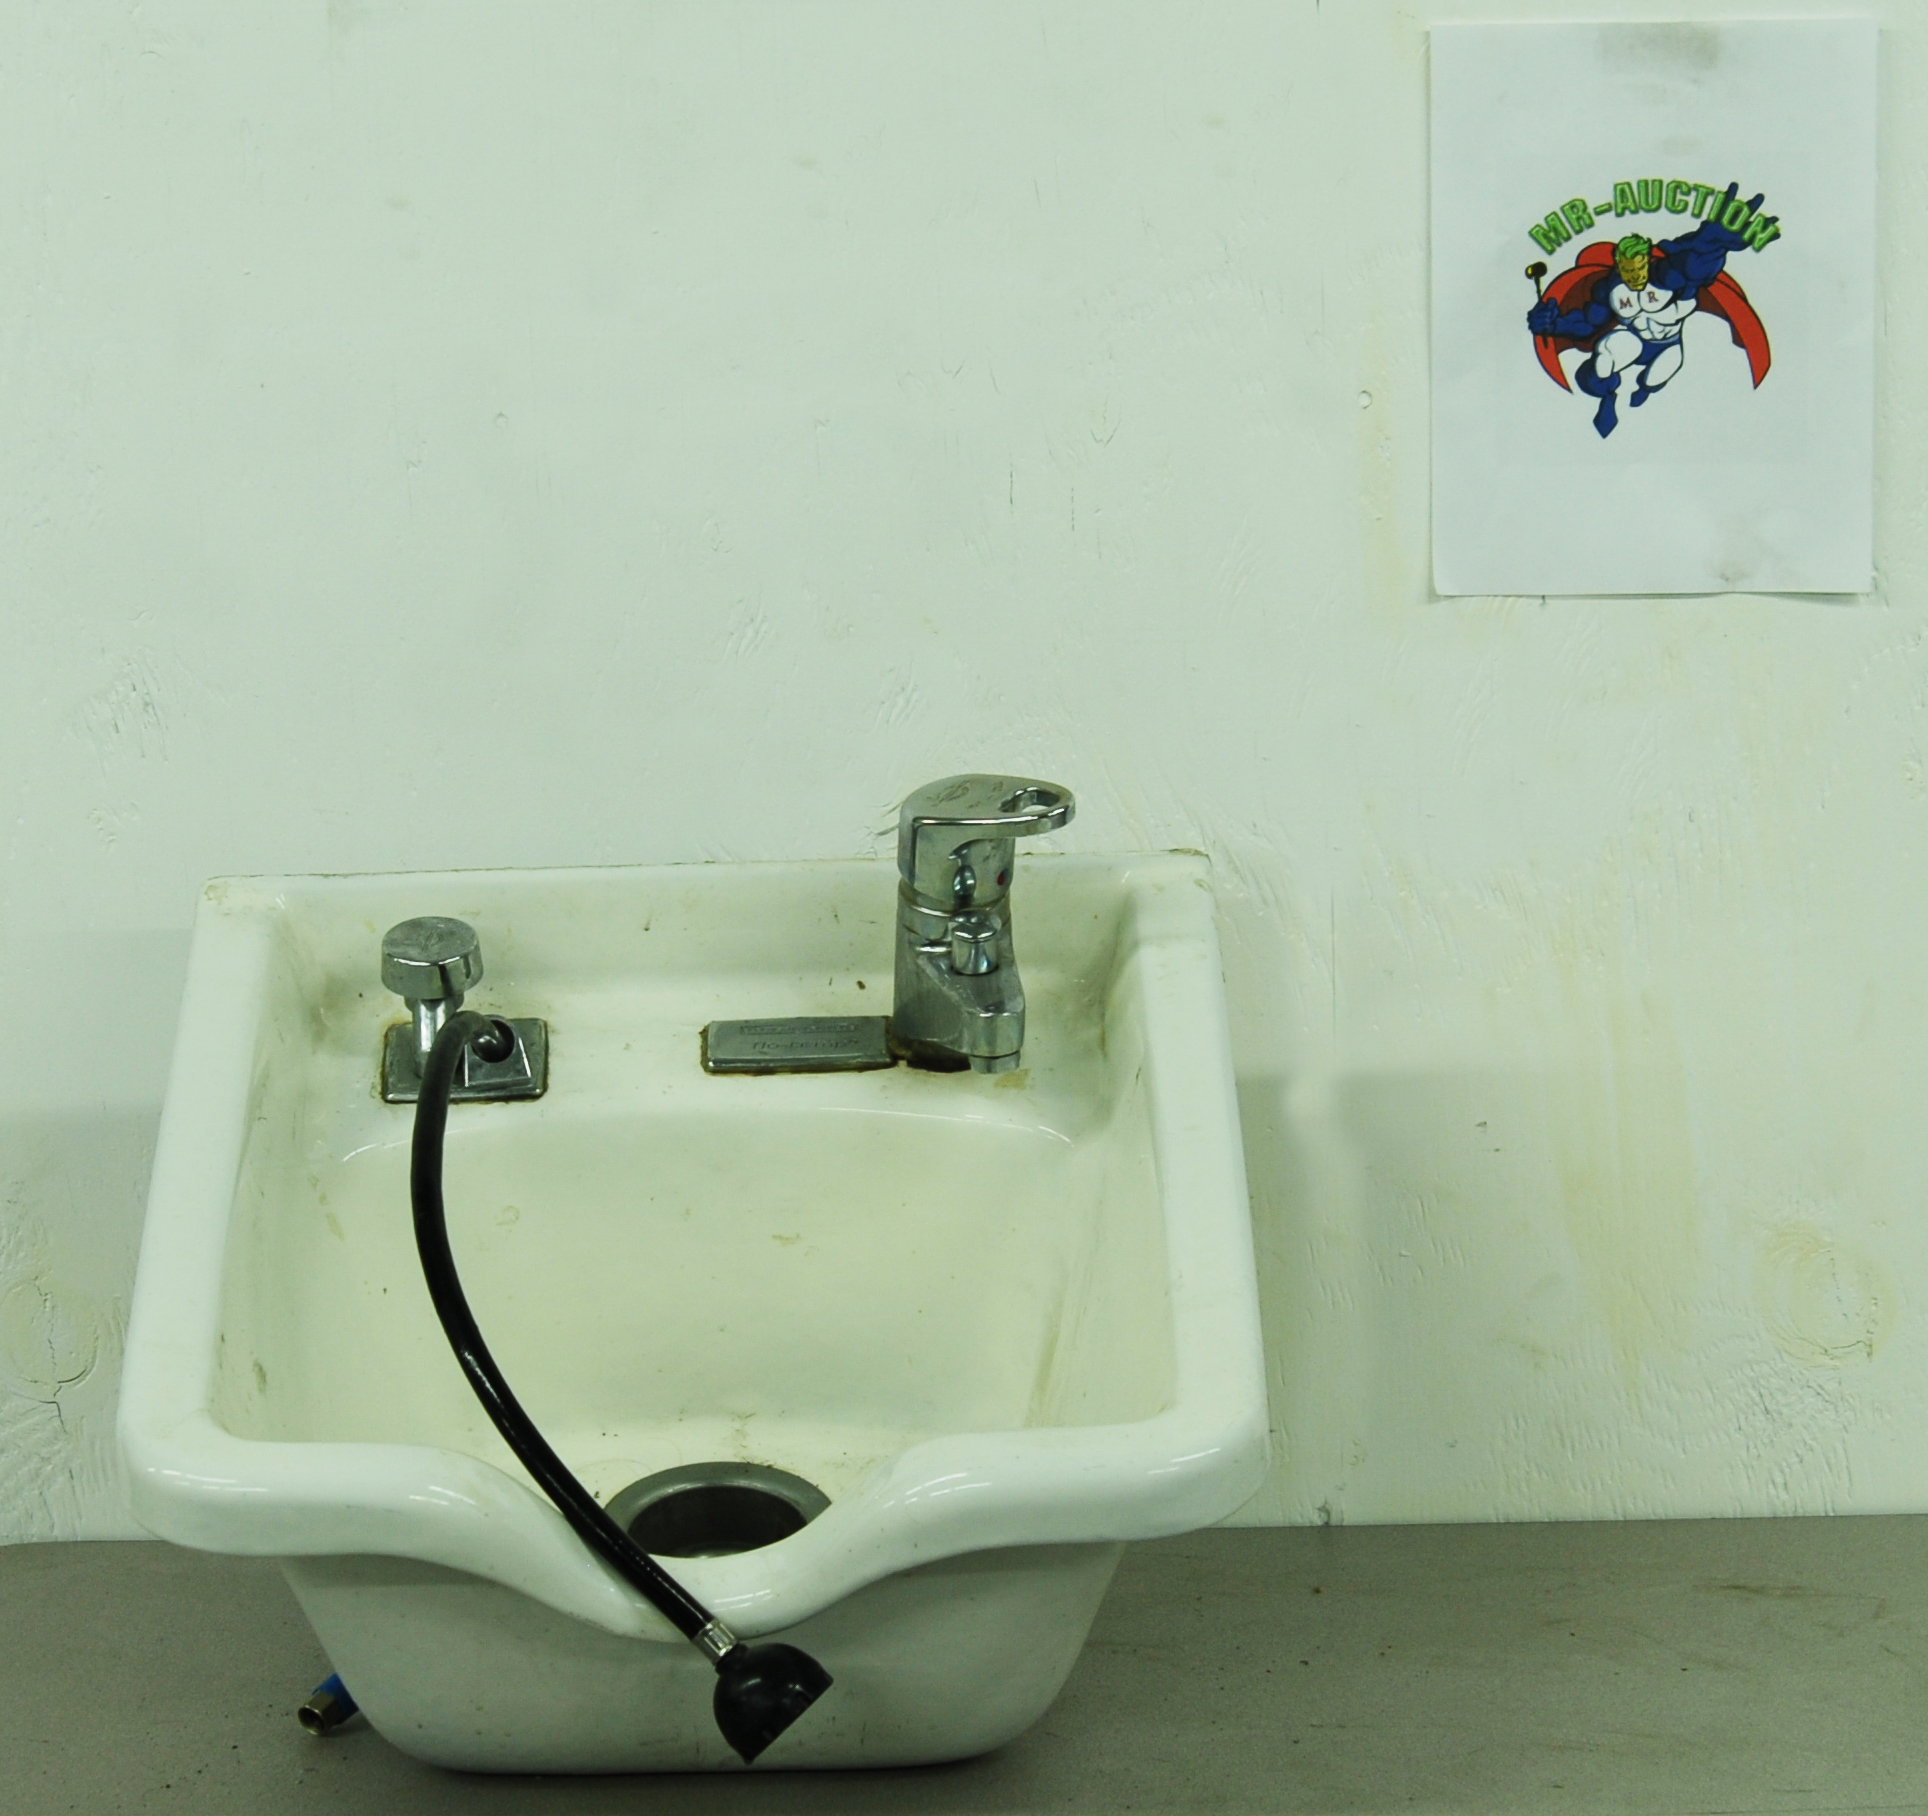 Lot 158   Belvedere Flo Temp Salon Sink With Faucet And Spray Nozzle